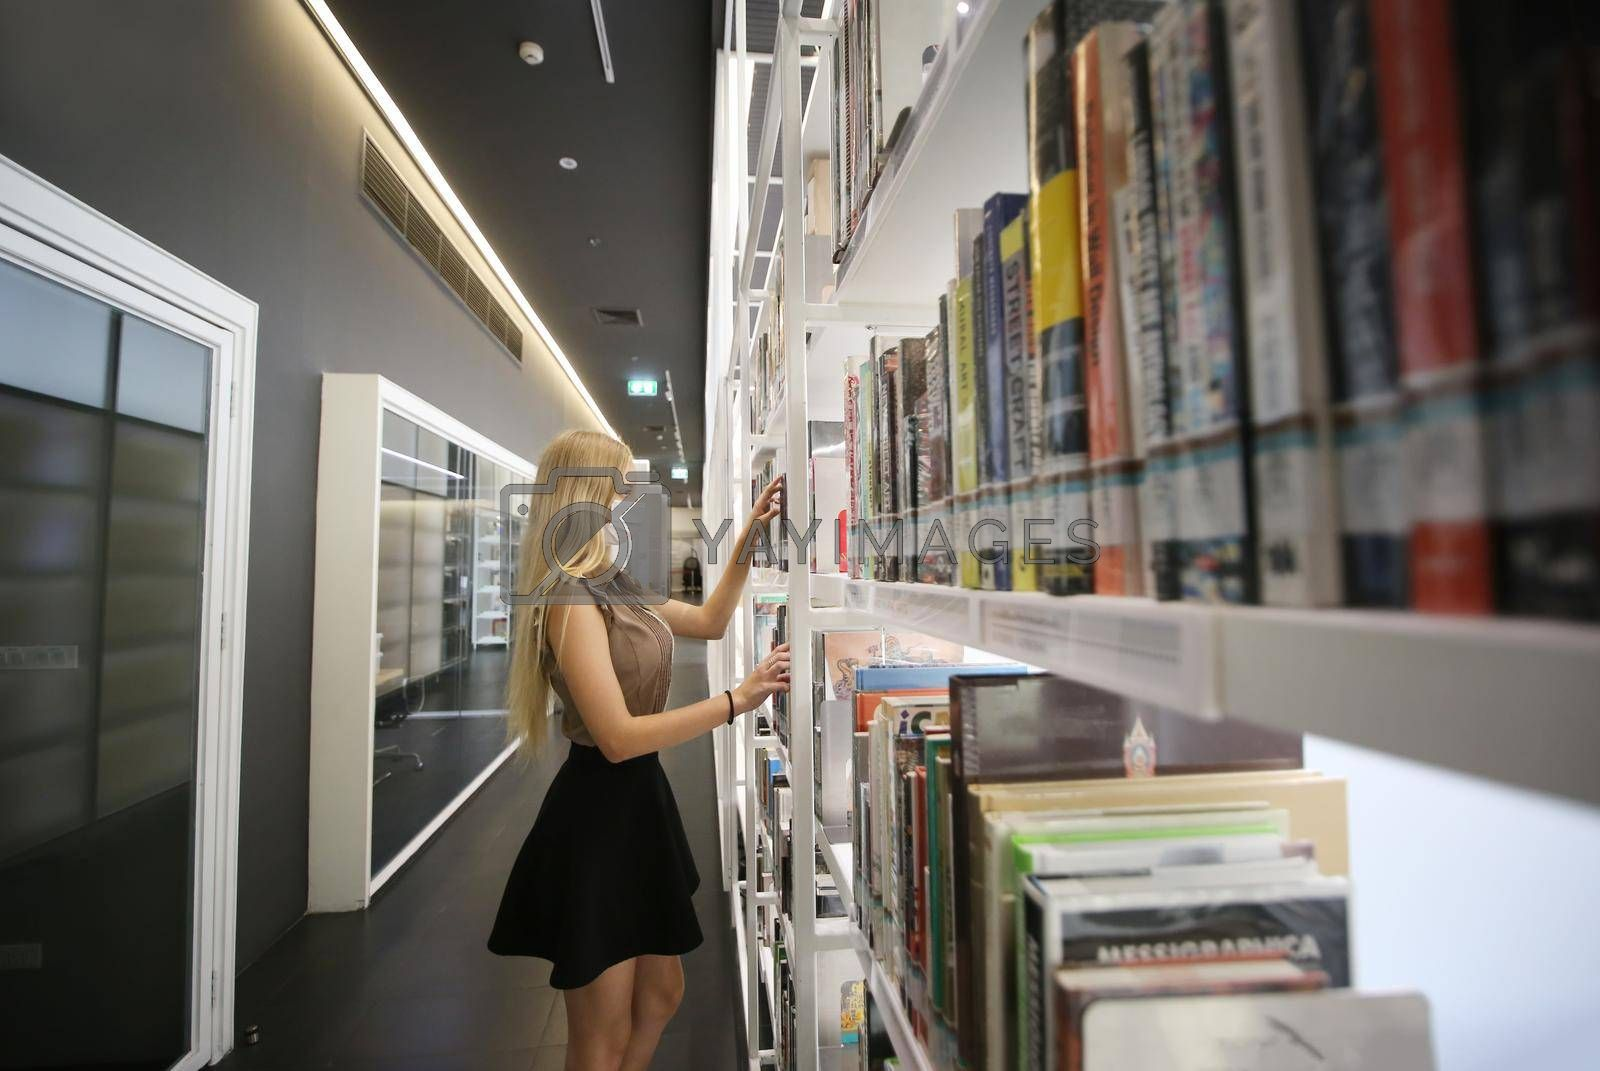 Royalty free image of Young woman or girl standing in bookstore or library and look on book. by chuanchai